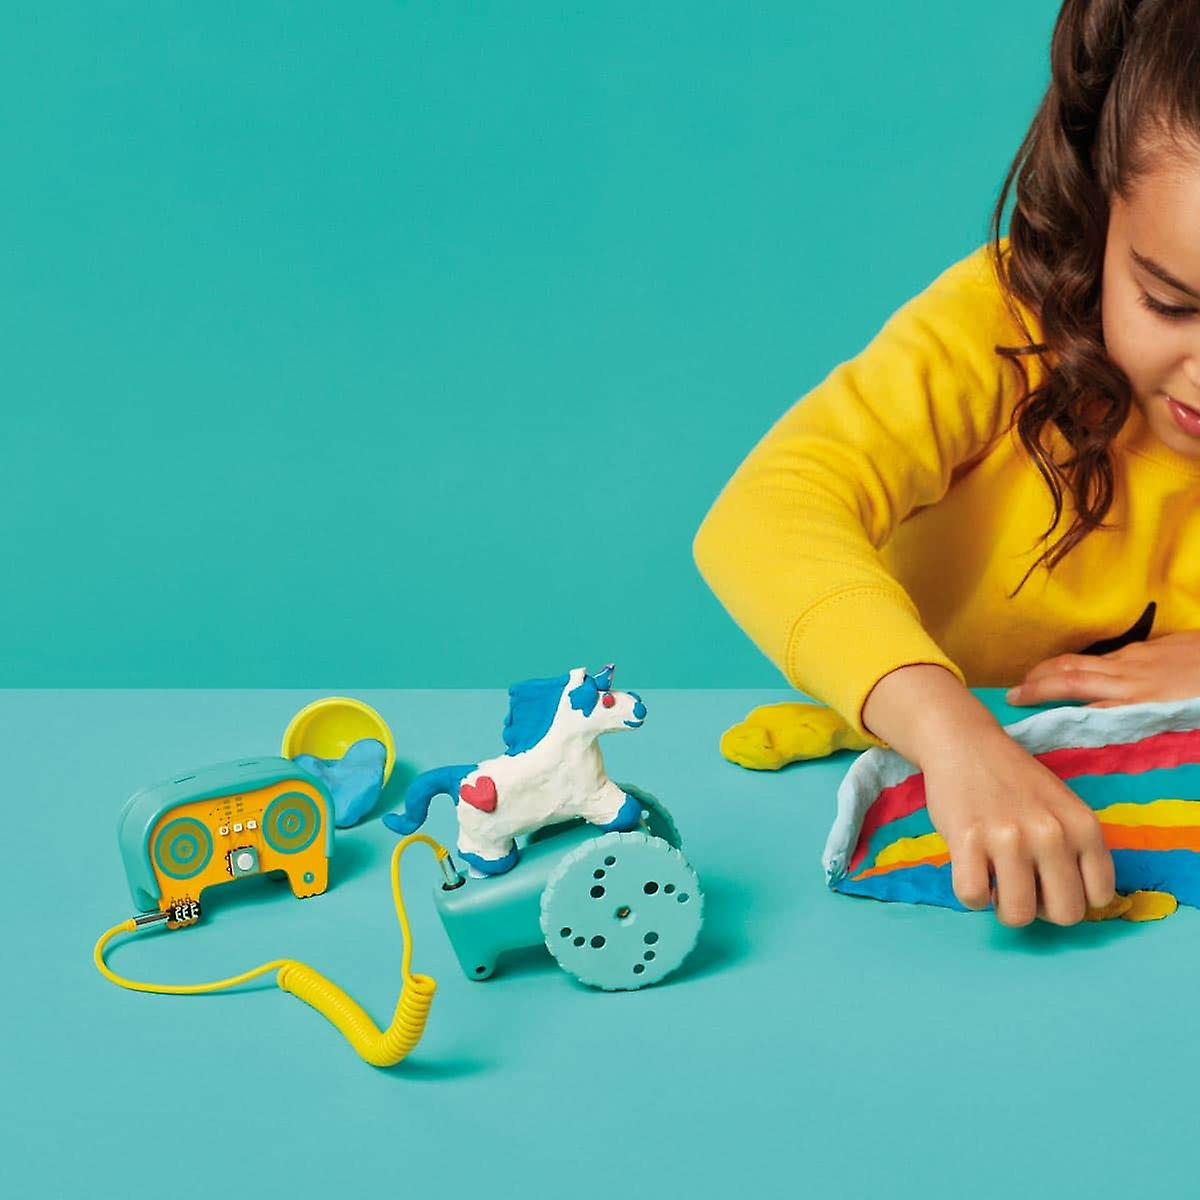 Tech Will Save Us Electro Machines Kit | Educational STEM Toy, Ages 4 and up